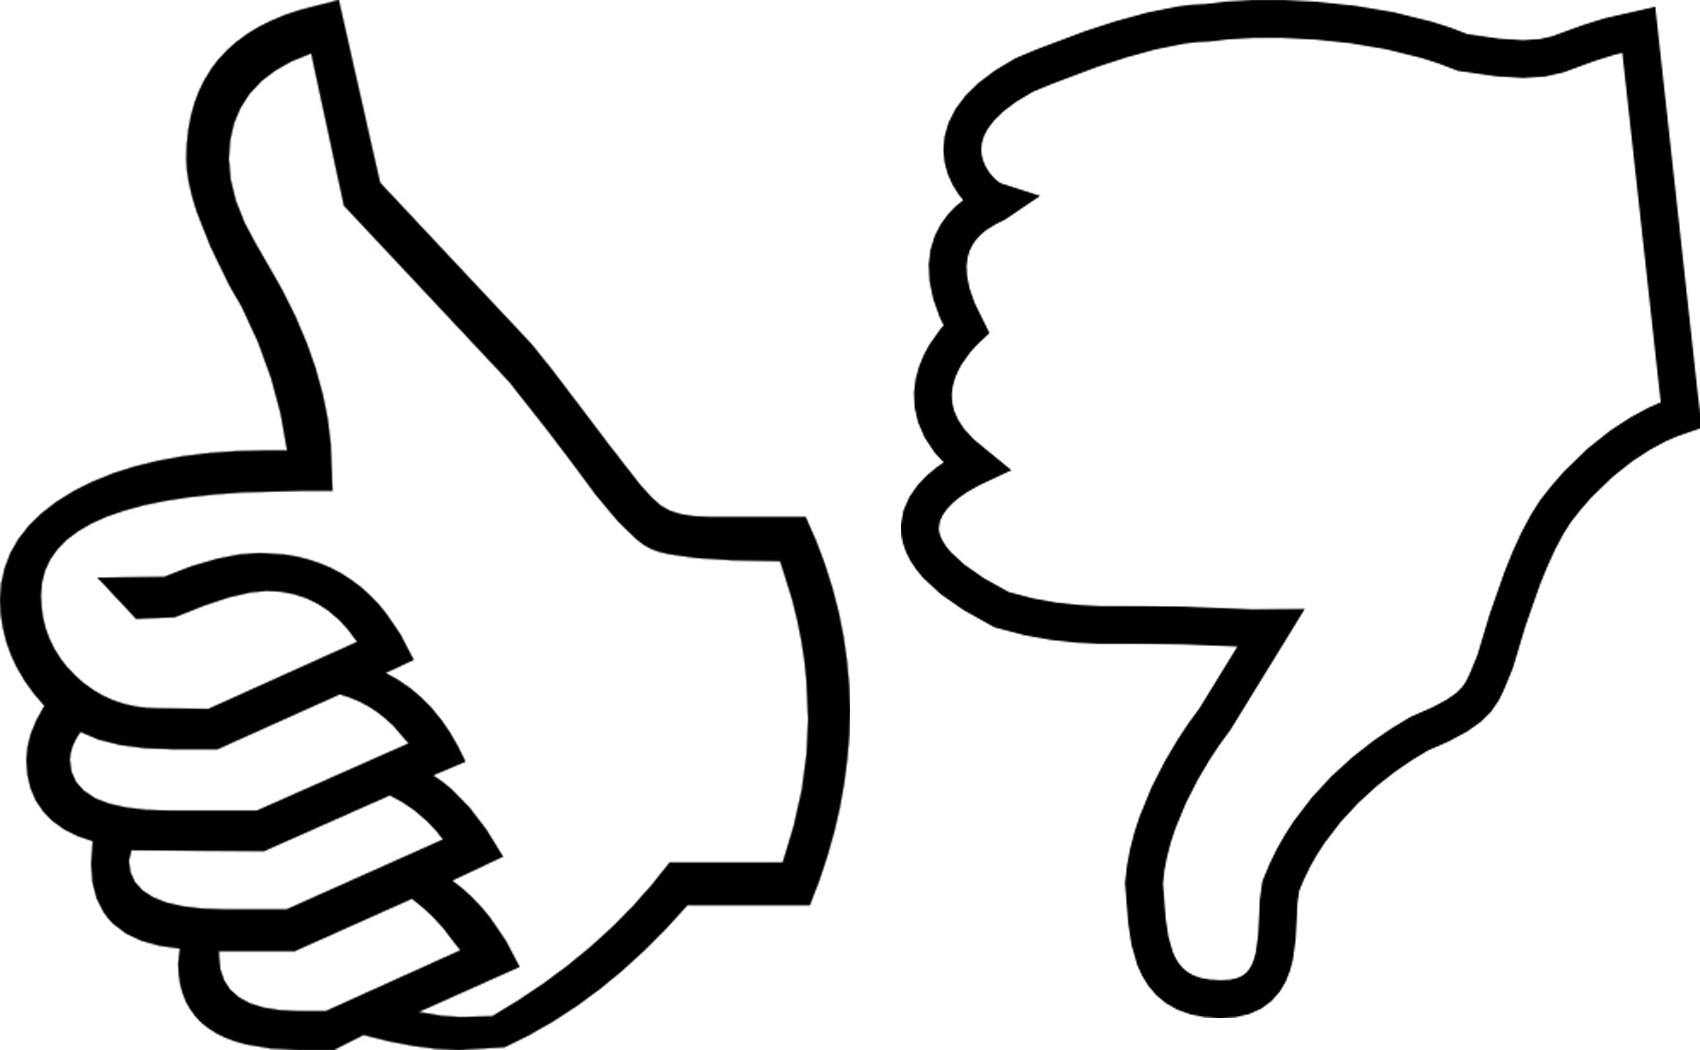 Up and down clipart black and white image royalty free Black And White Thumbs Up | Free download best Black And ... image royalty free